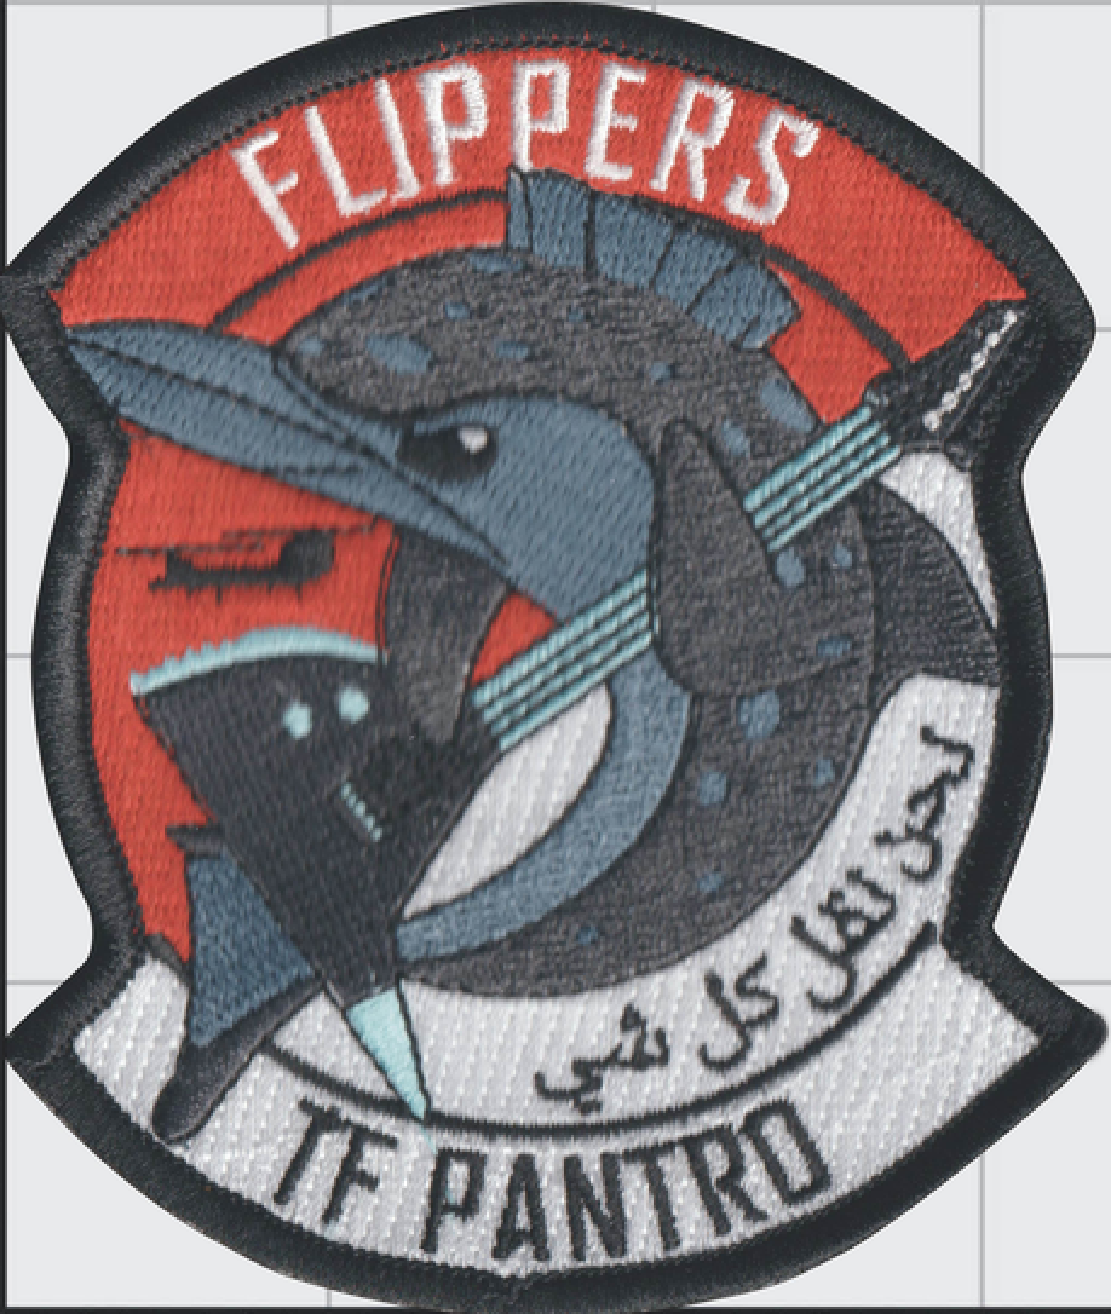 Officially Licensed US Army B Co 3-82 GSAB Flippers TF Pantro Patch - $11.87